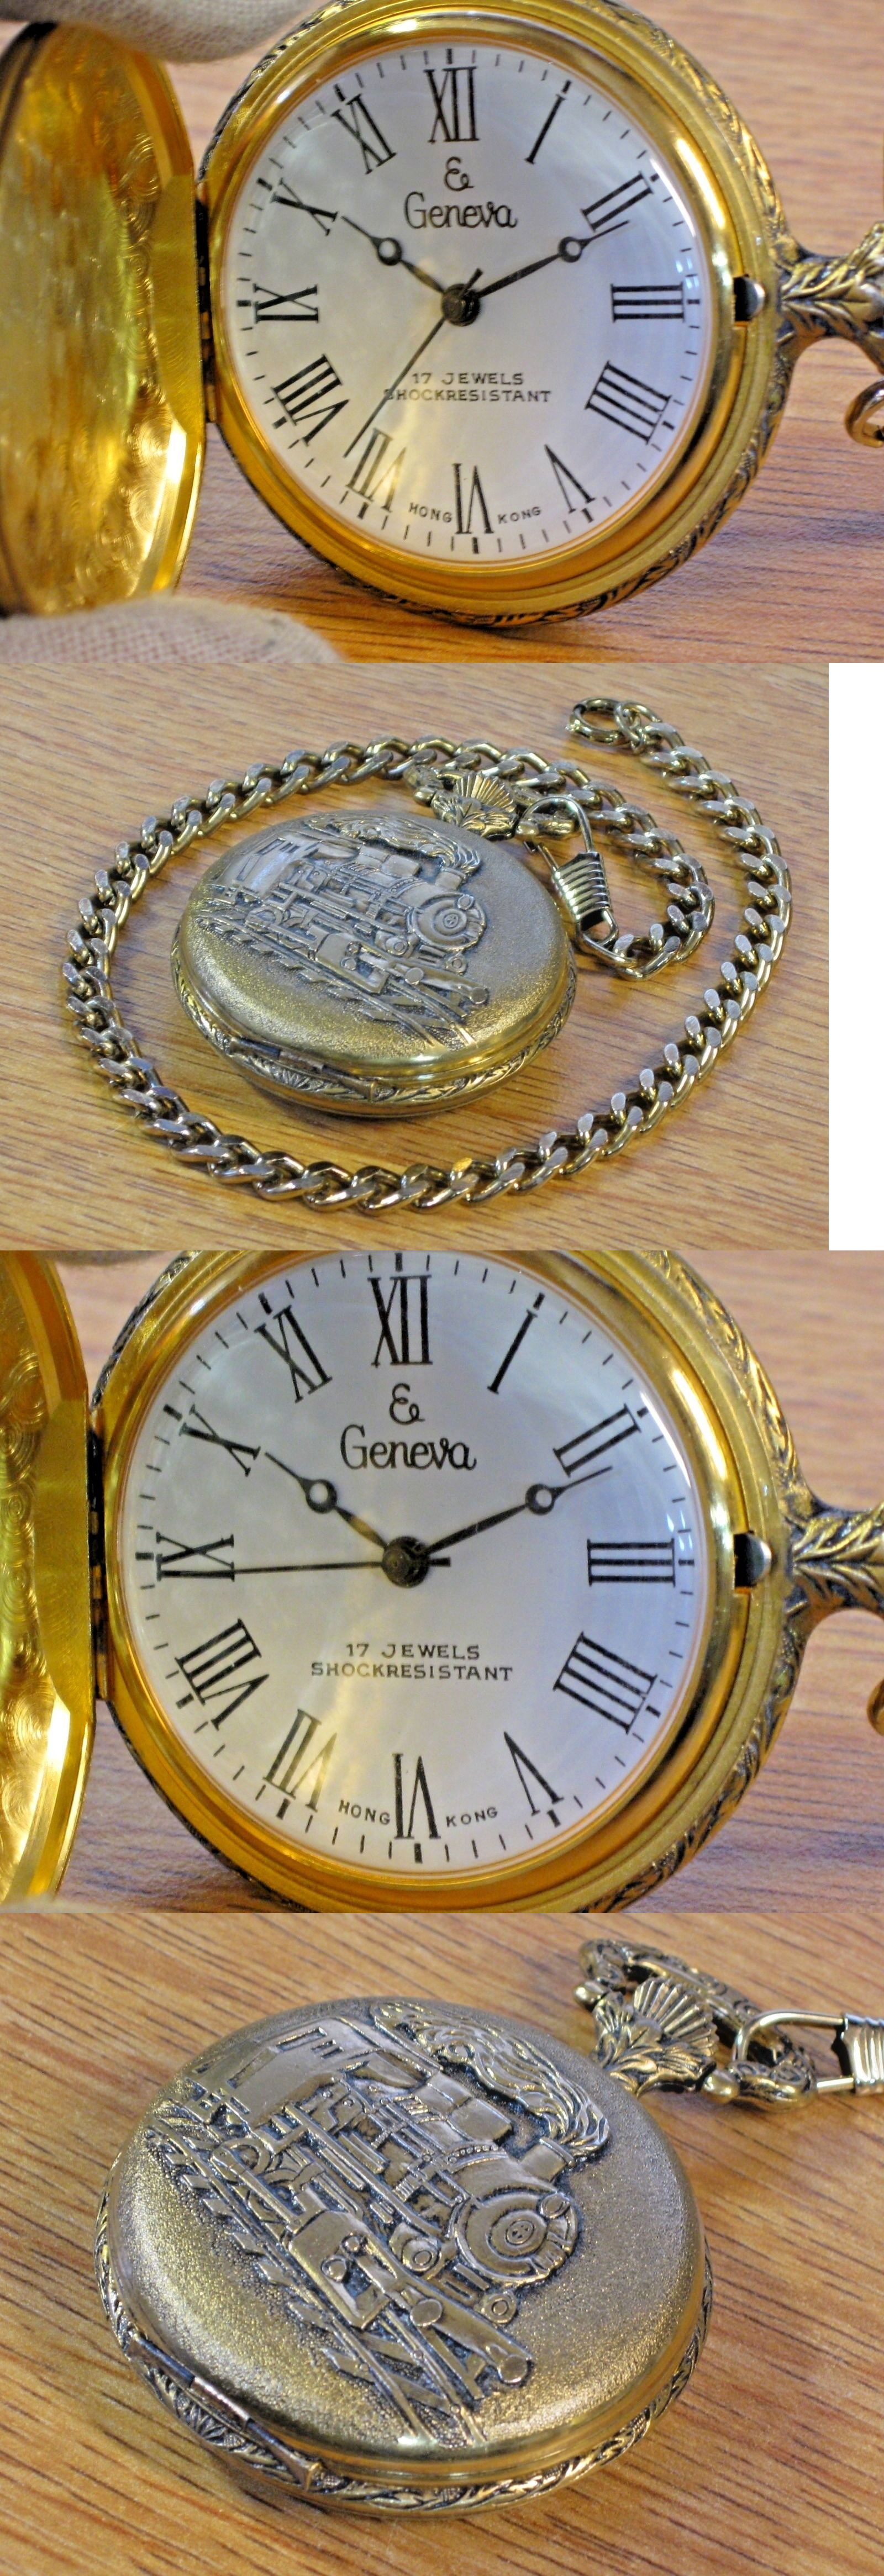 s pocketwatch watch watches guido face open conductor railroad collection pocket approved quartz